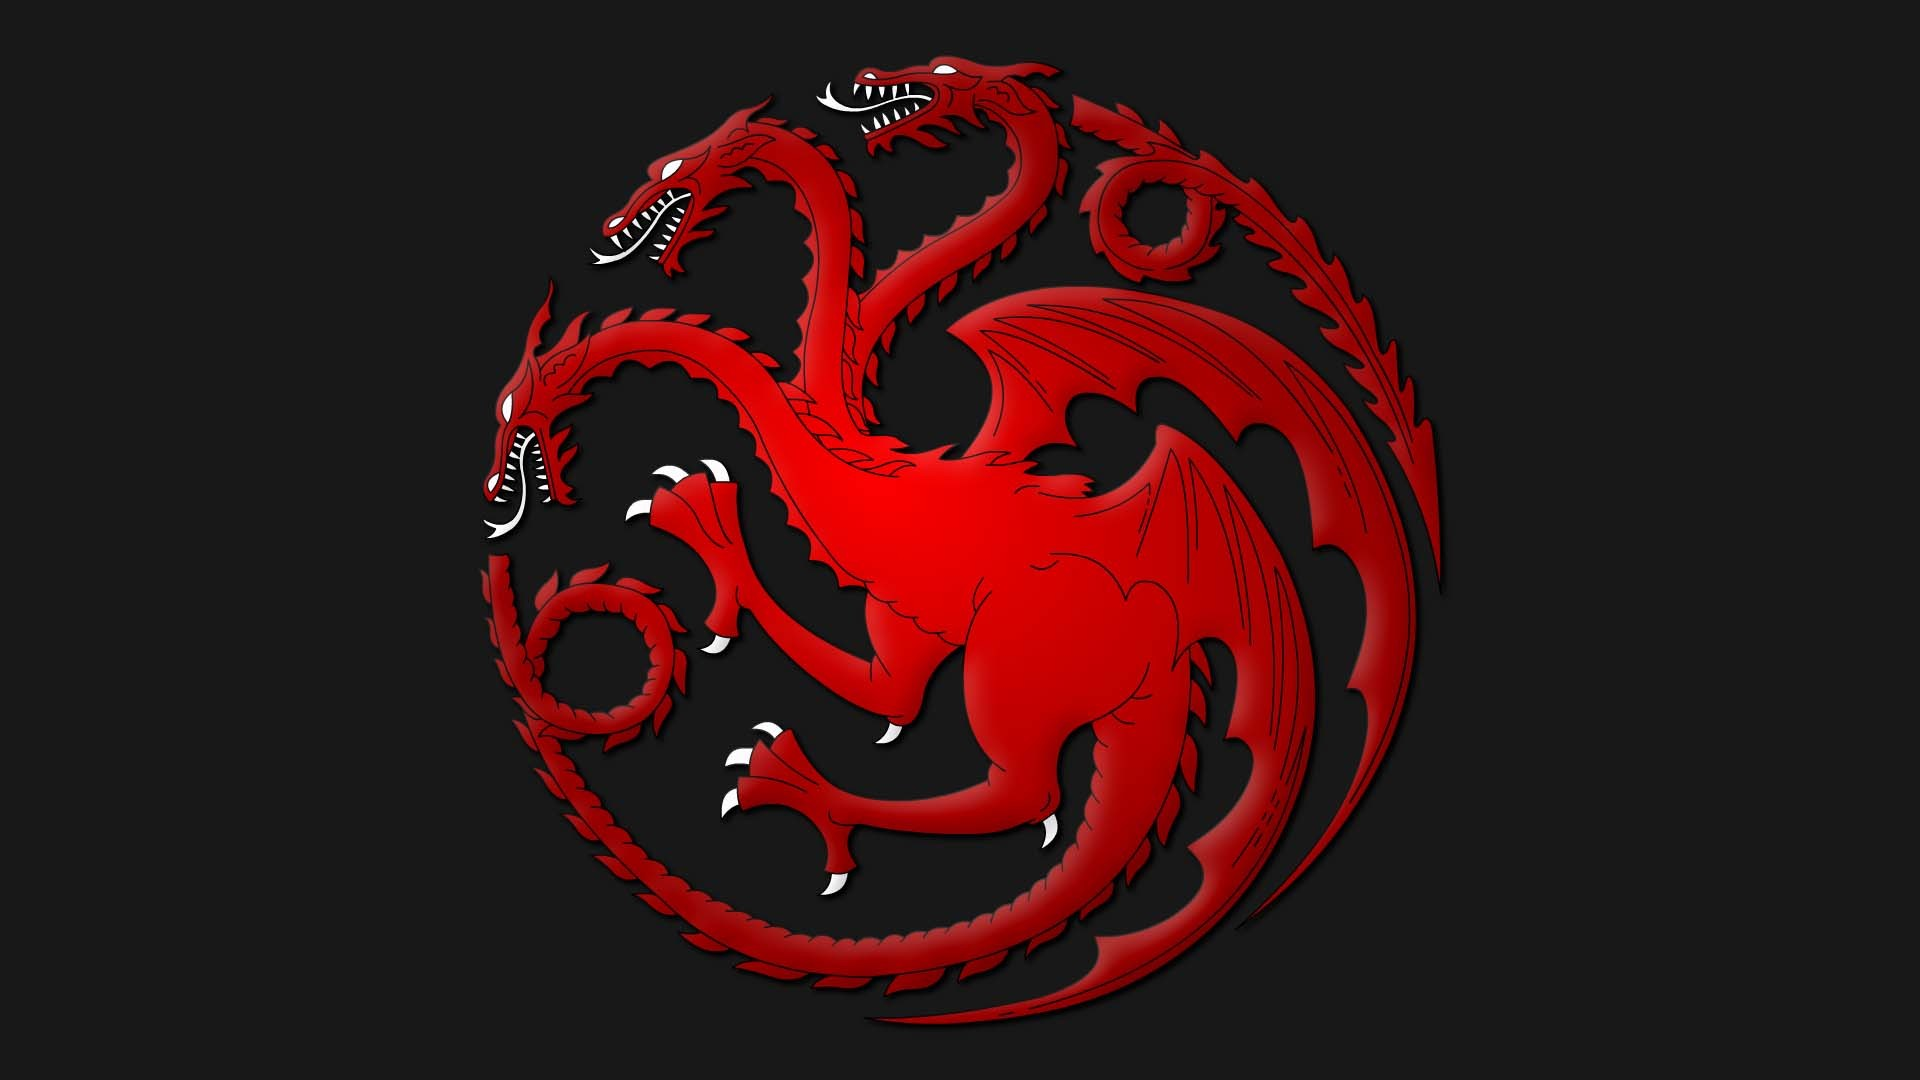 Game Of Thrones Wallpaper Targaryen Posted By Ethan Anderson